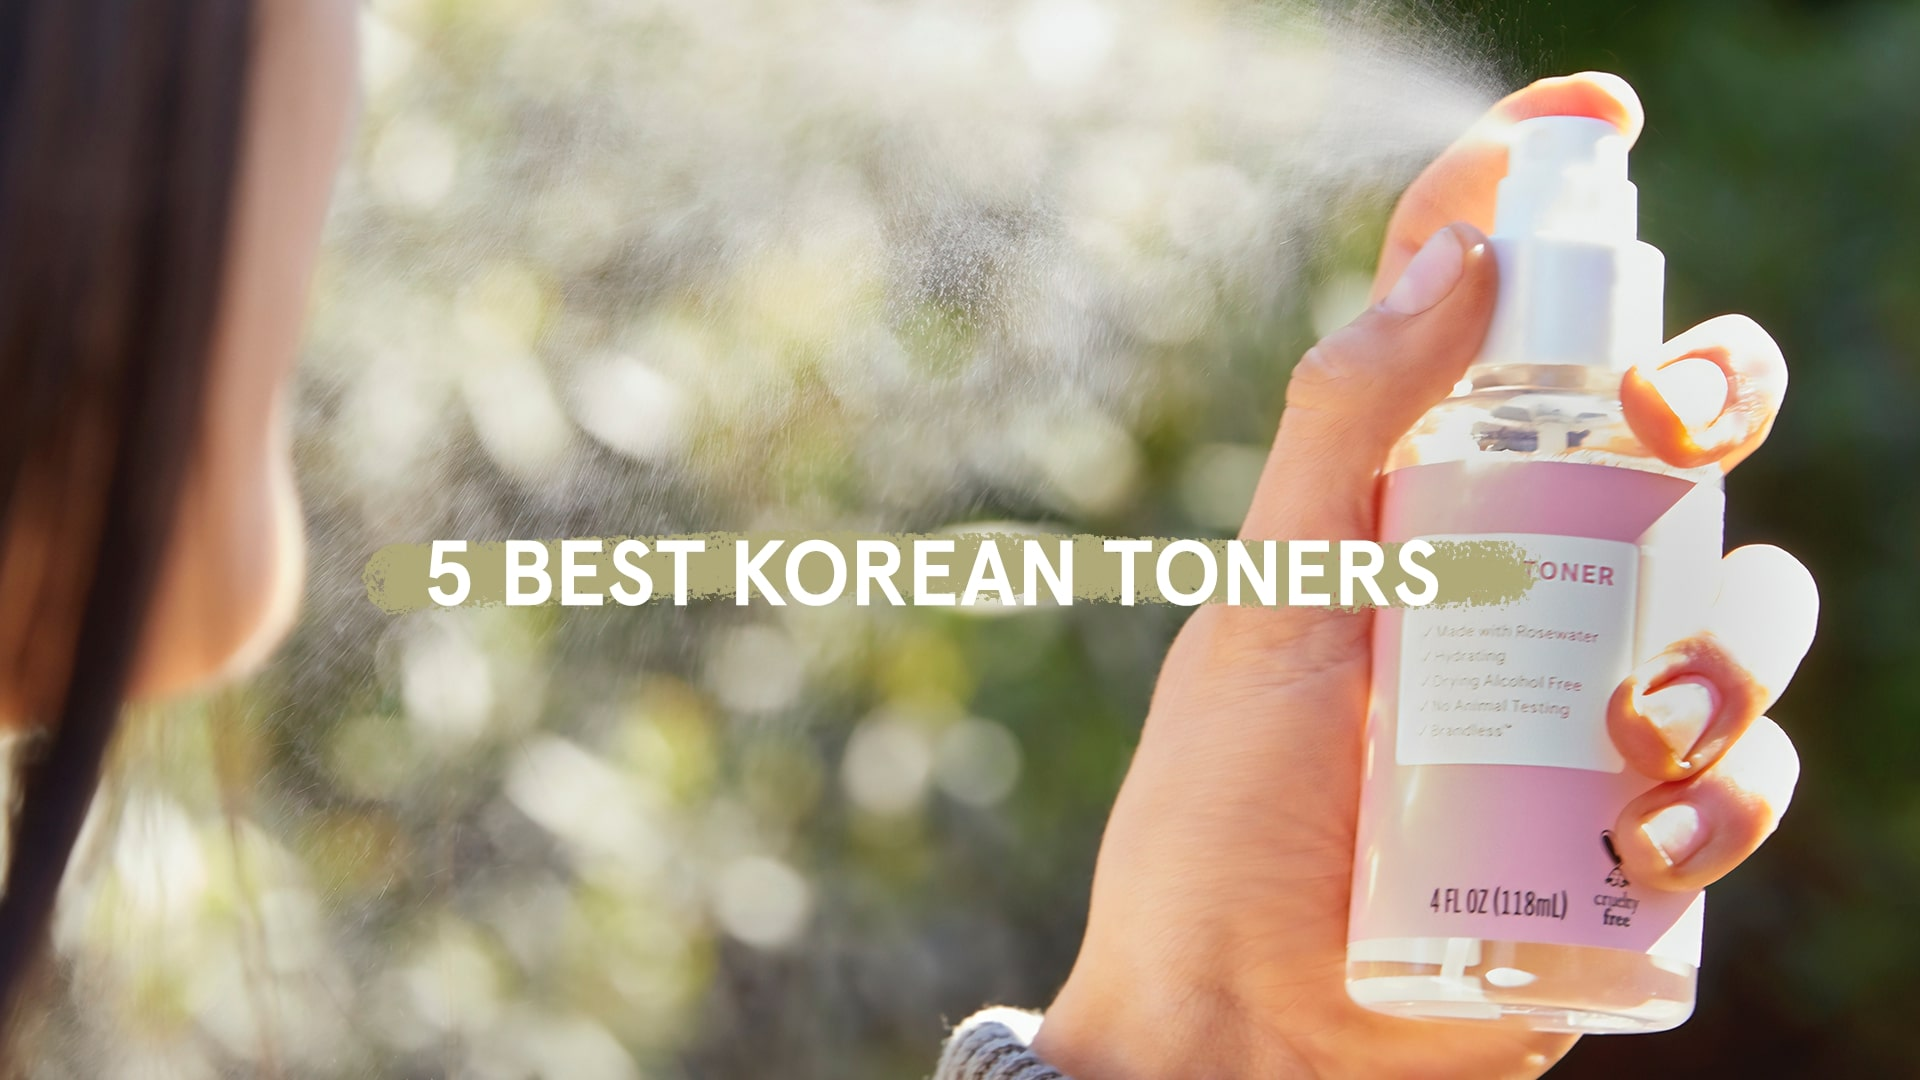 10 Best Korean Toners For Dry Oily And Acne Prone Skin